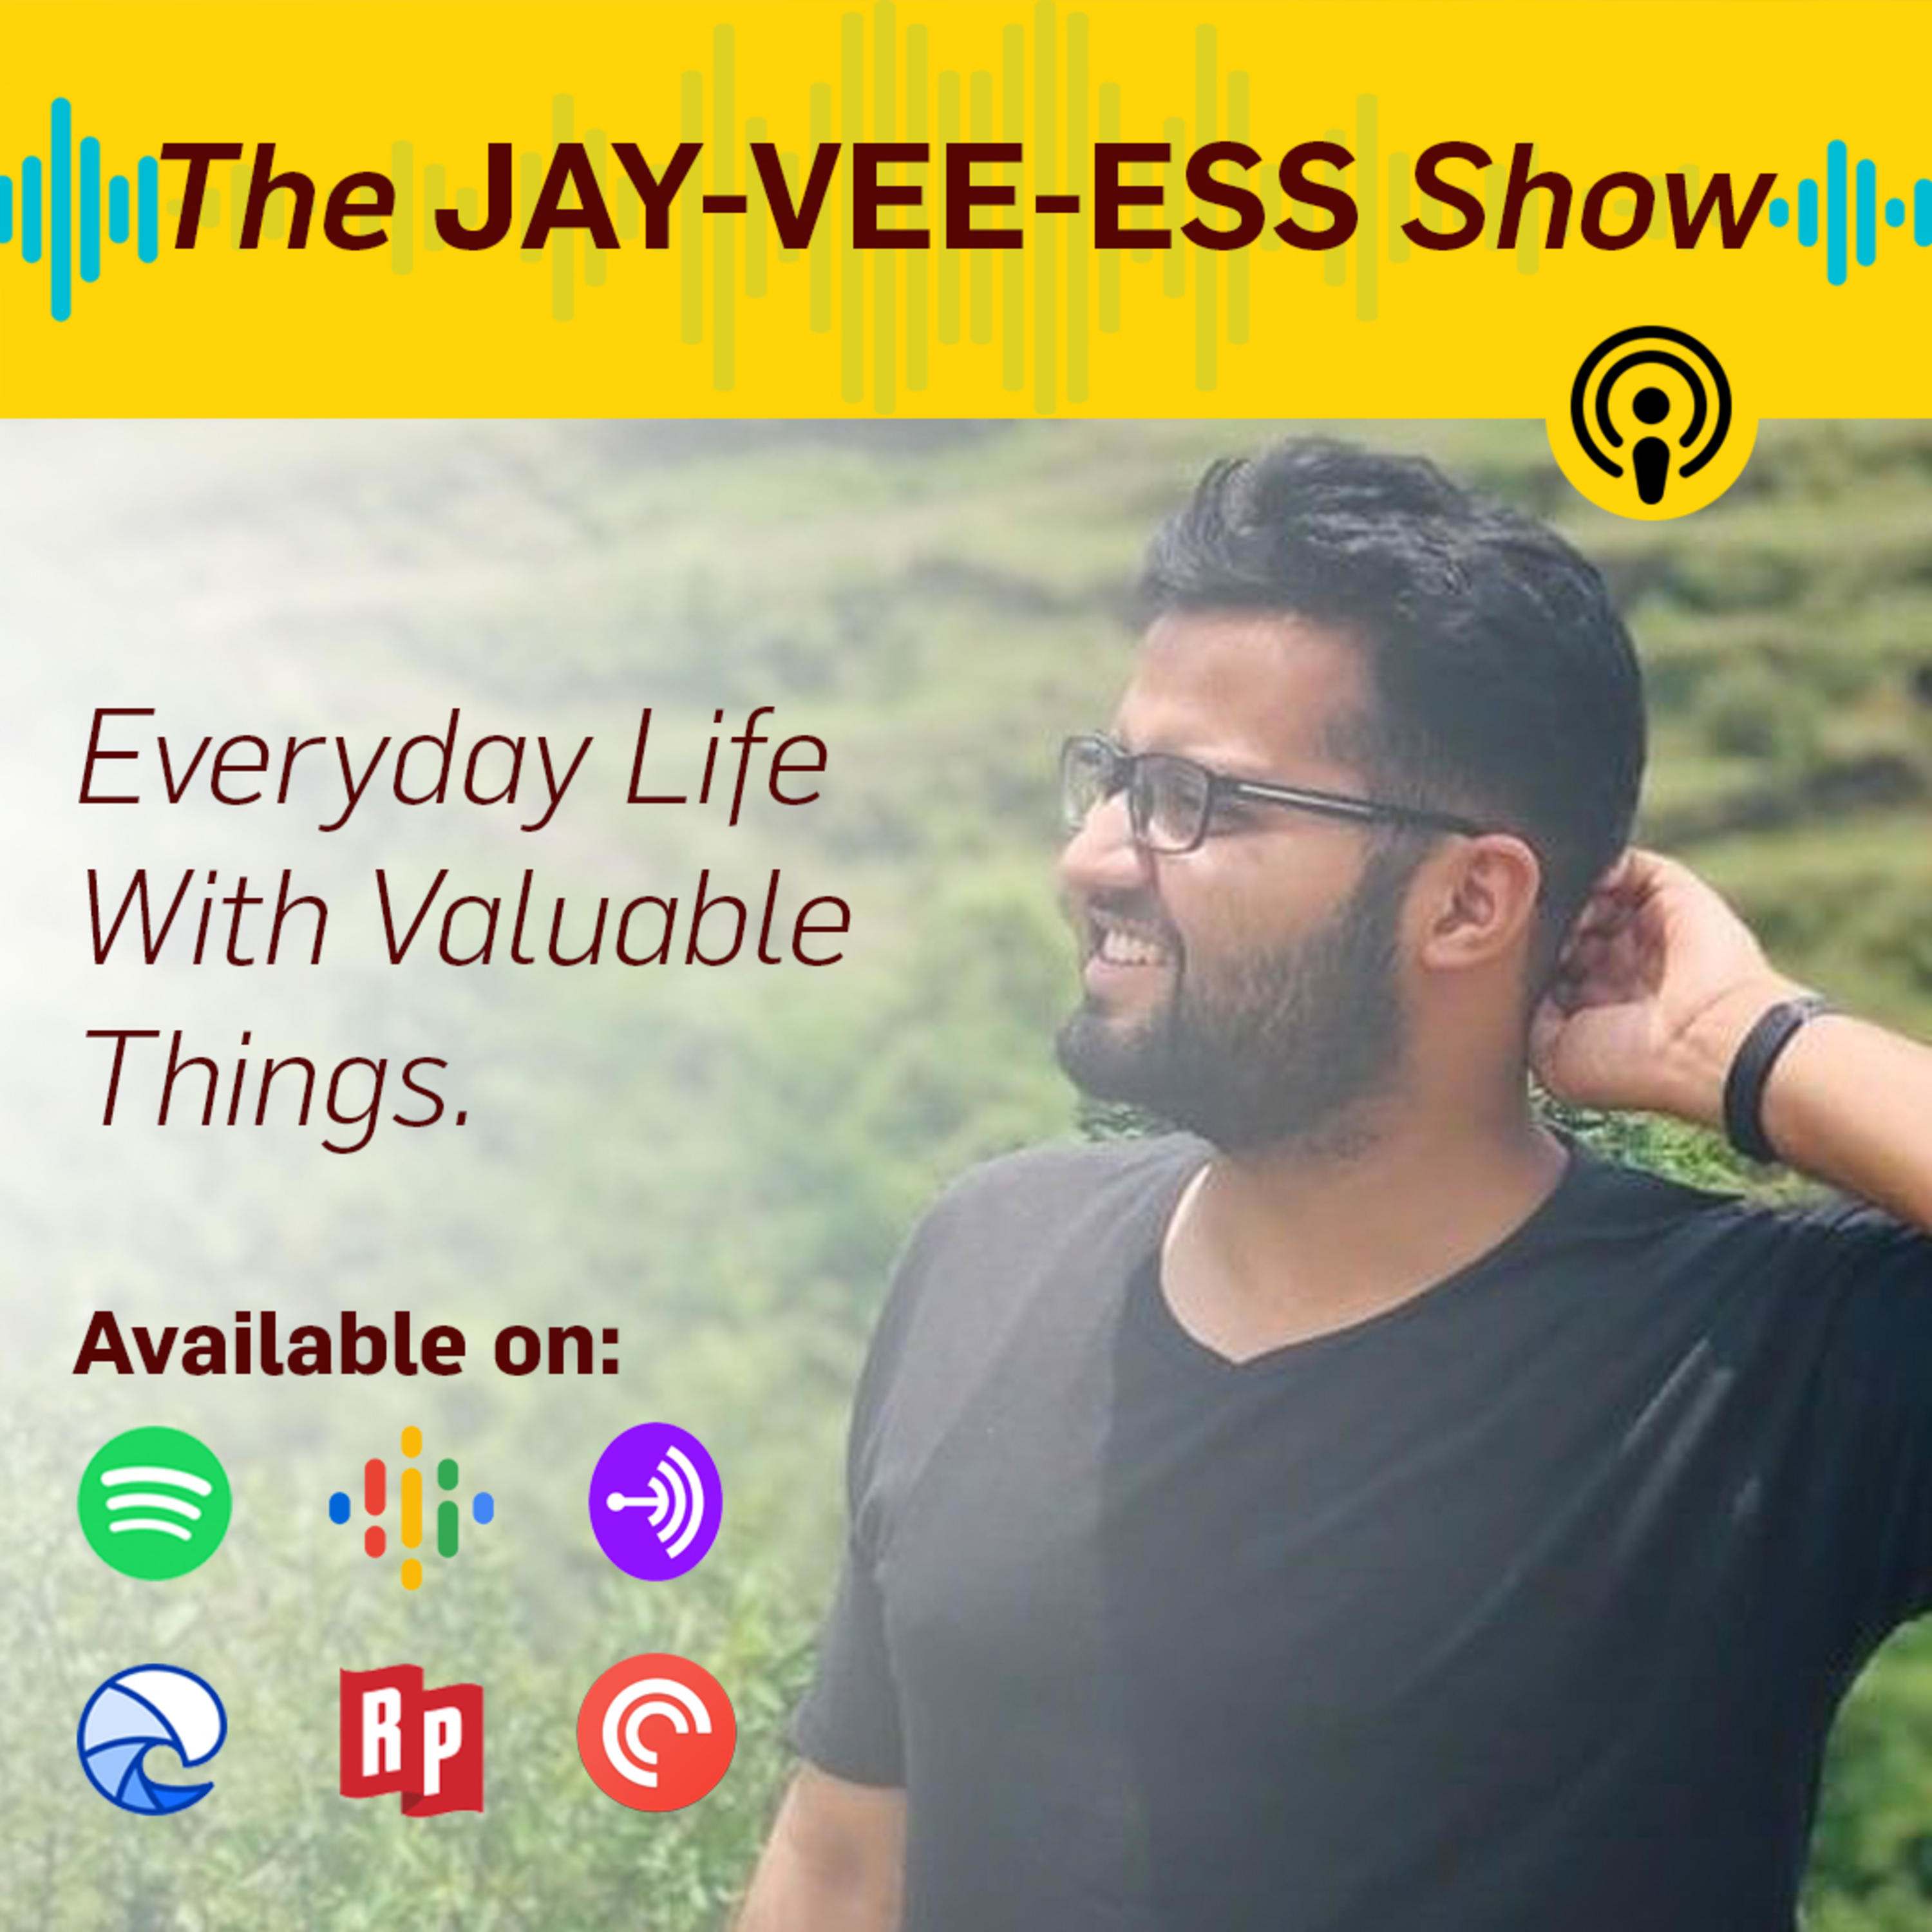 The JAY-VEE-ESS show